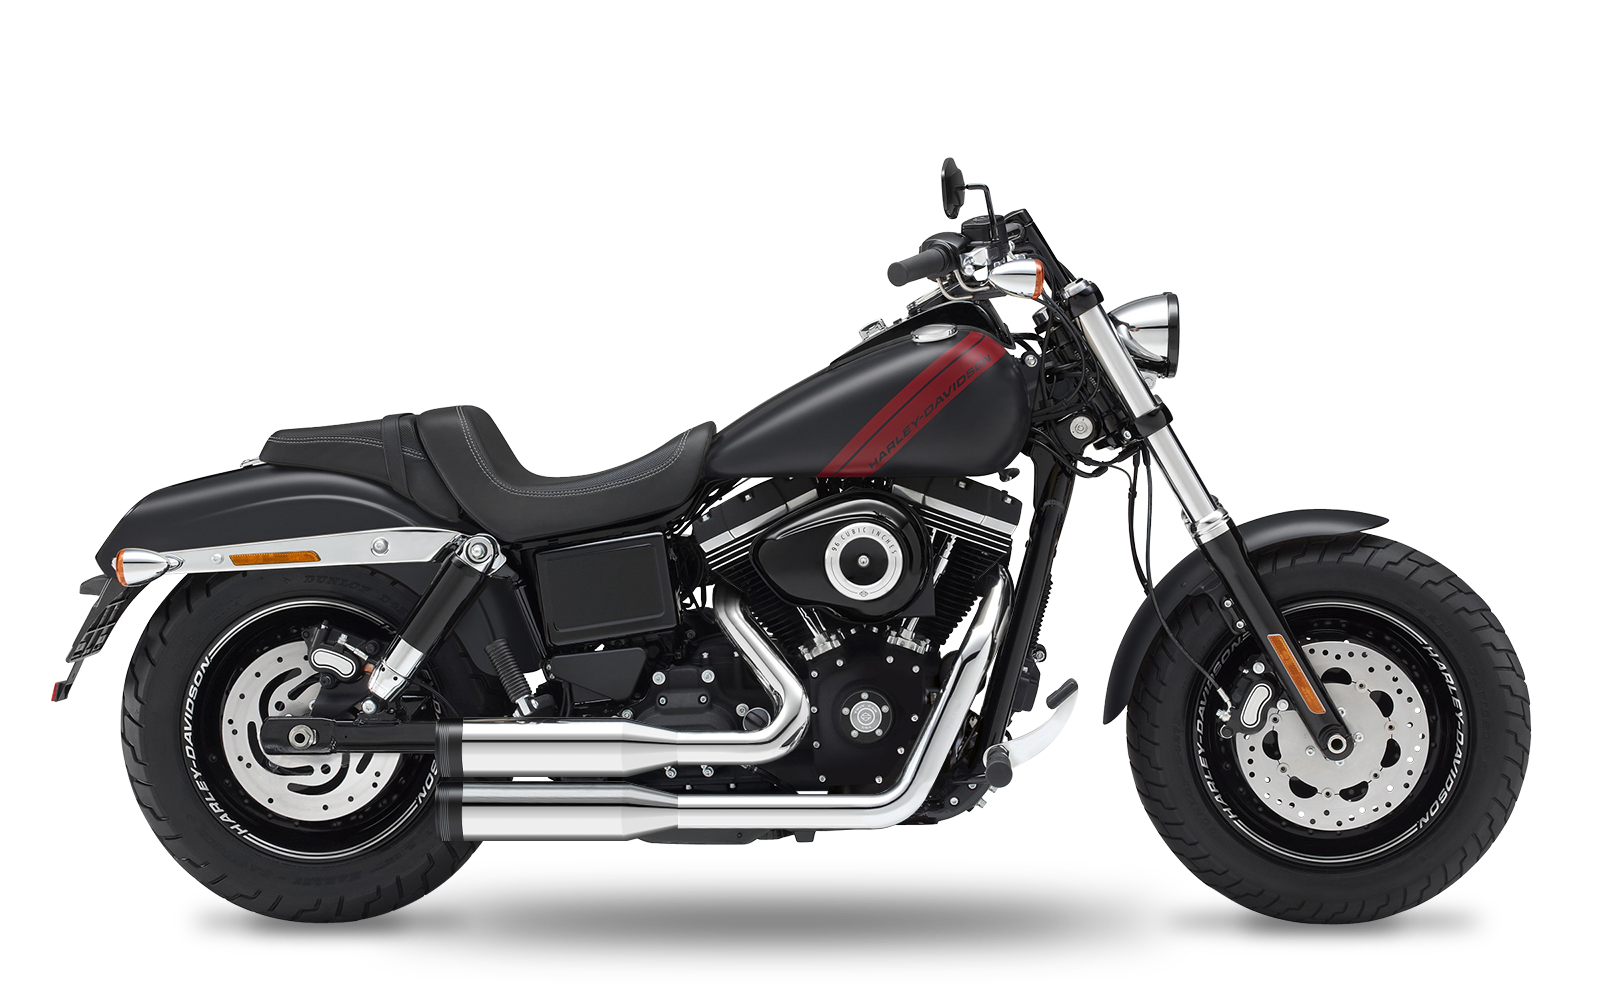 Dyna - Fat Bob - TC103 - 2013-2016 - Complete systems